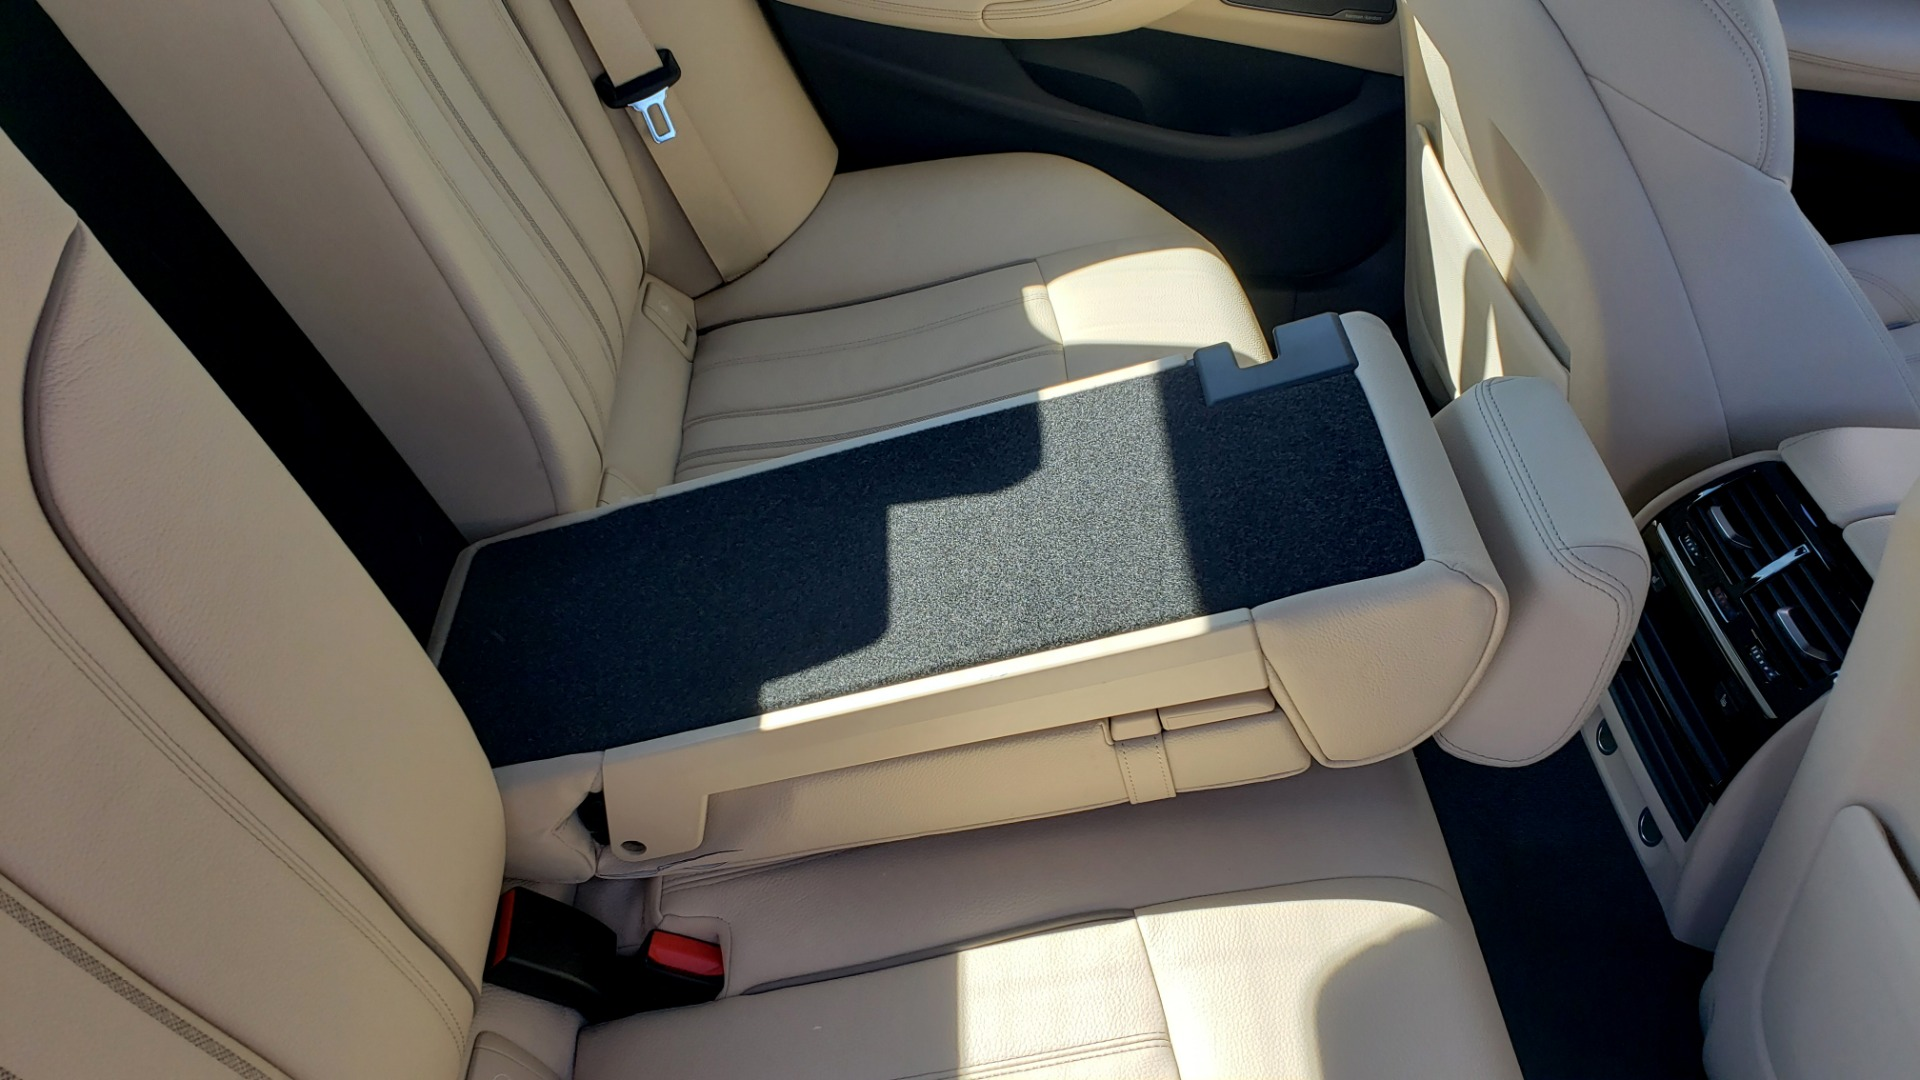 Used 2018 BMW 5 SERIES 540IXDRIVE PREMIUM / DRVR ASST PLUS / LUX PKG / APPLE CARPLAY for sale Sold at Formula Imports in Charlotte NC 28227 66